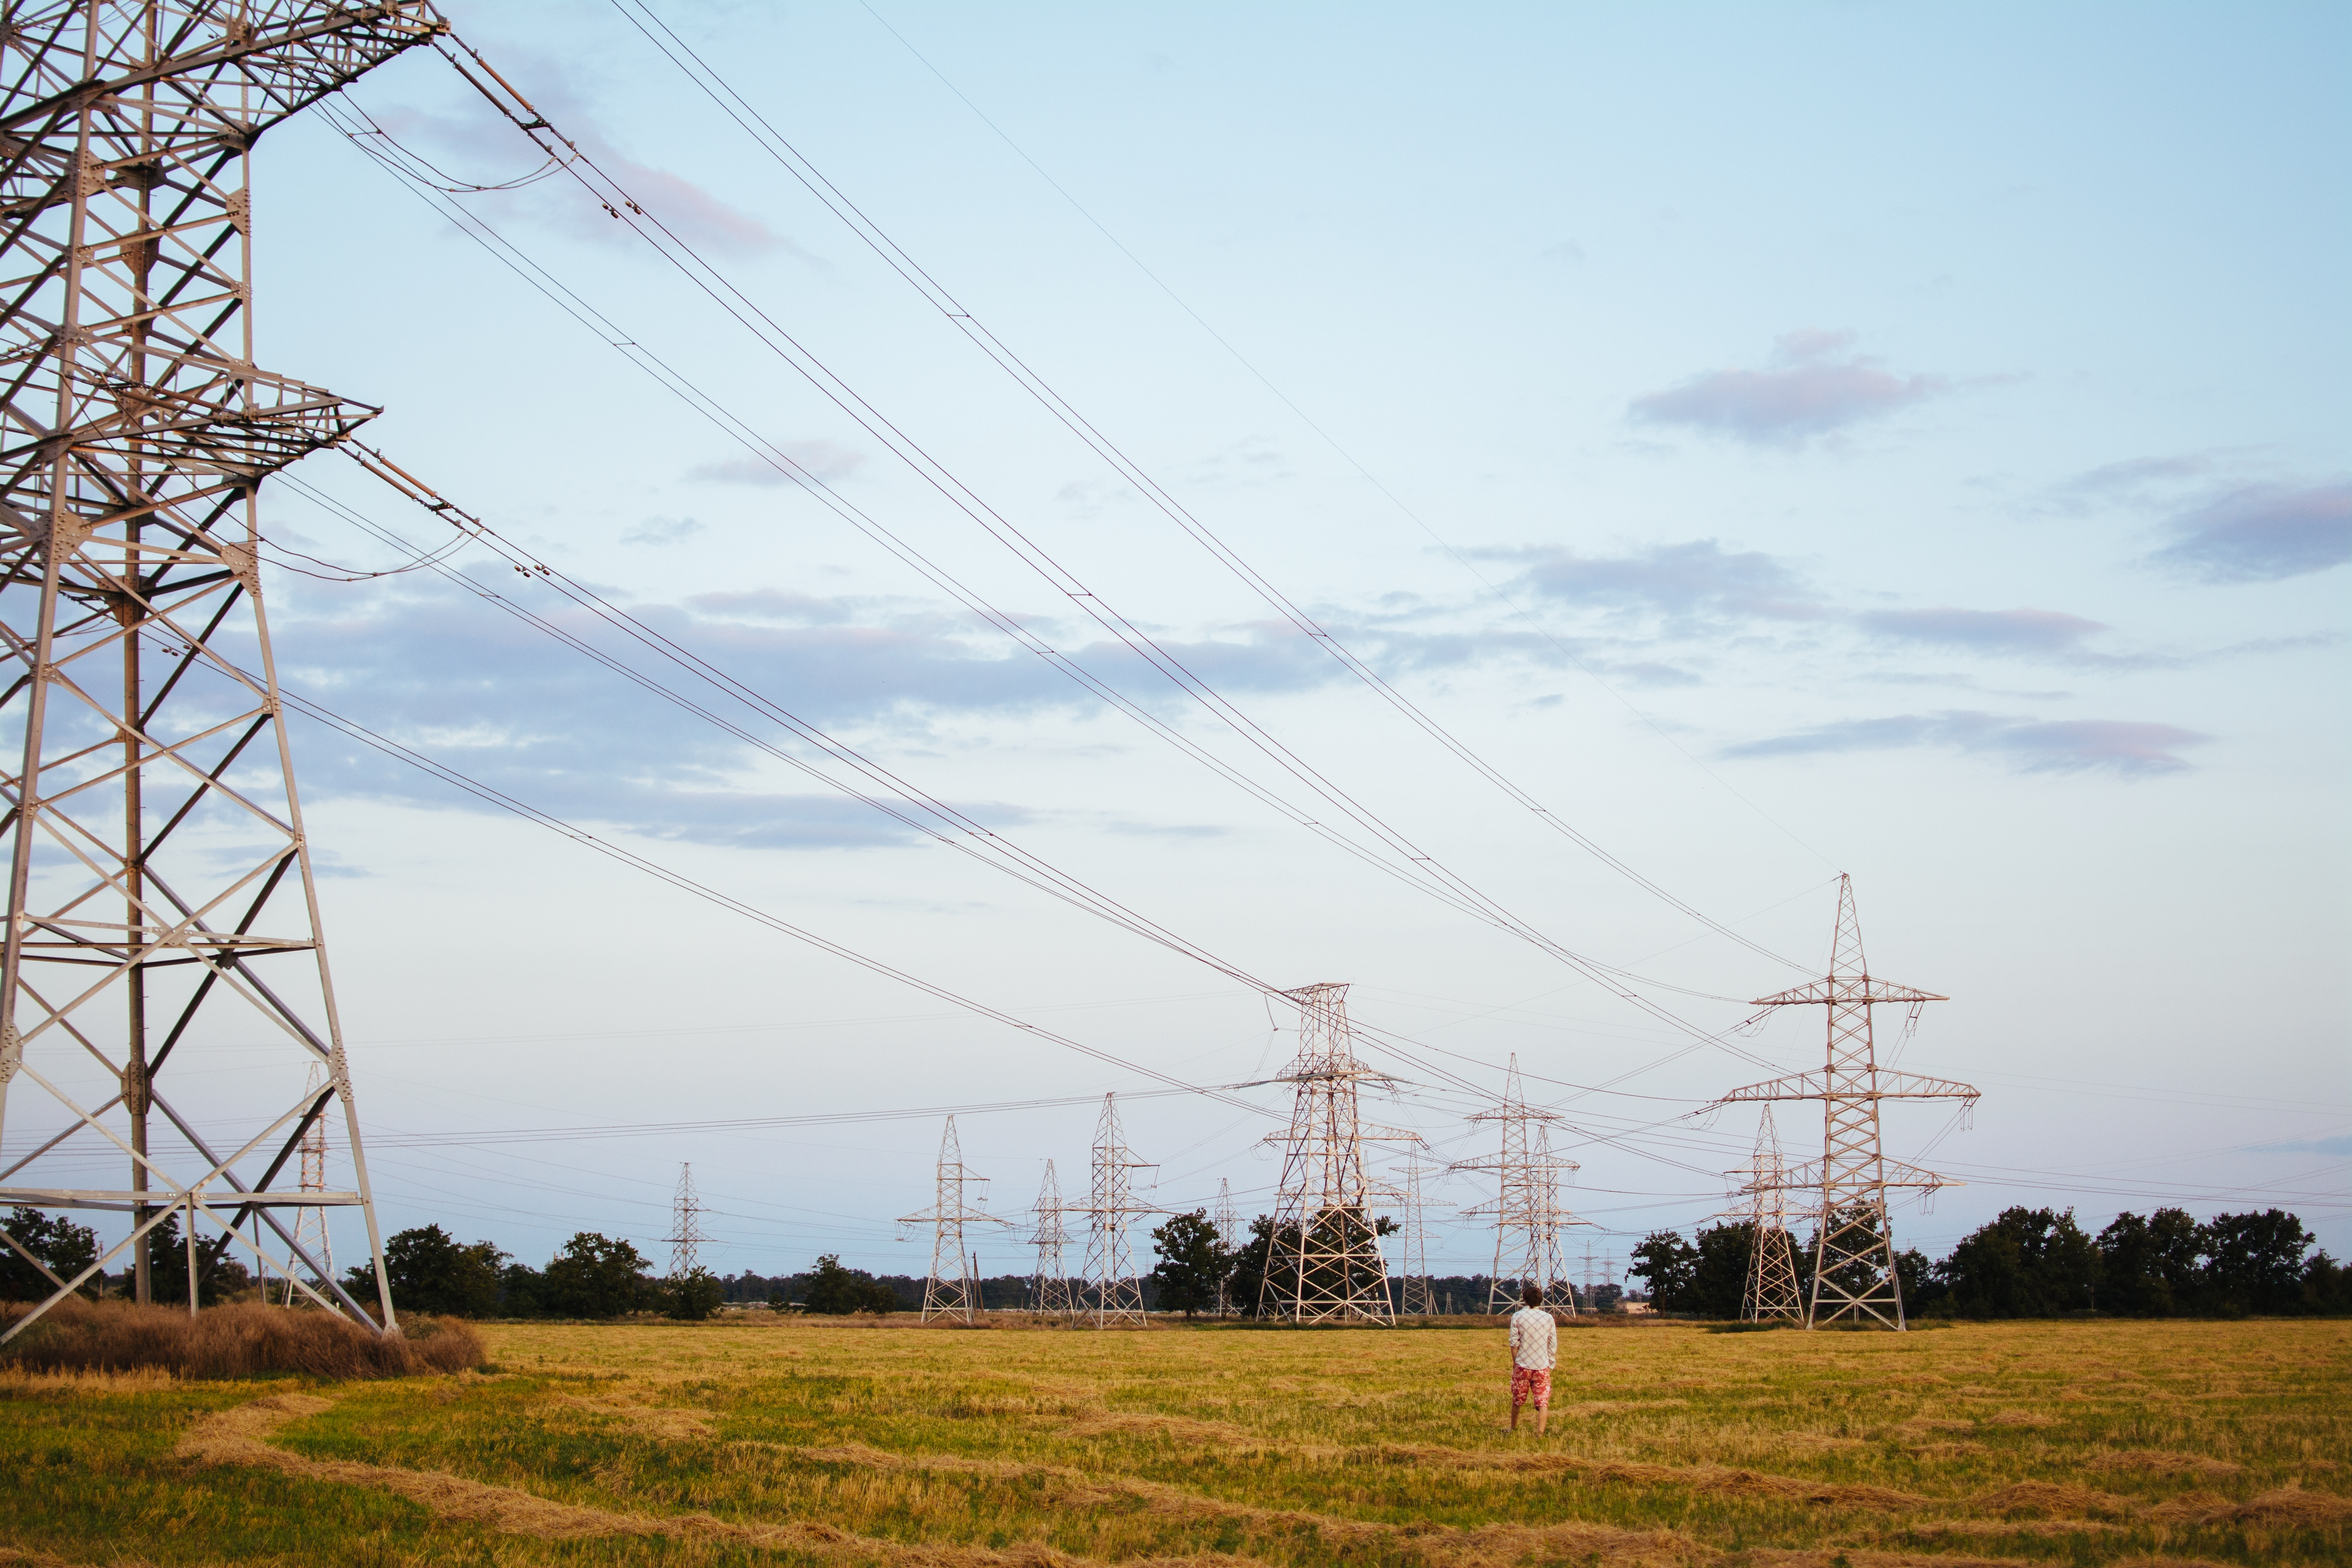 Man in a white shirt and red shorts standing in a field gazing at the pylons and power lines running between them under a slightly cloudy sky